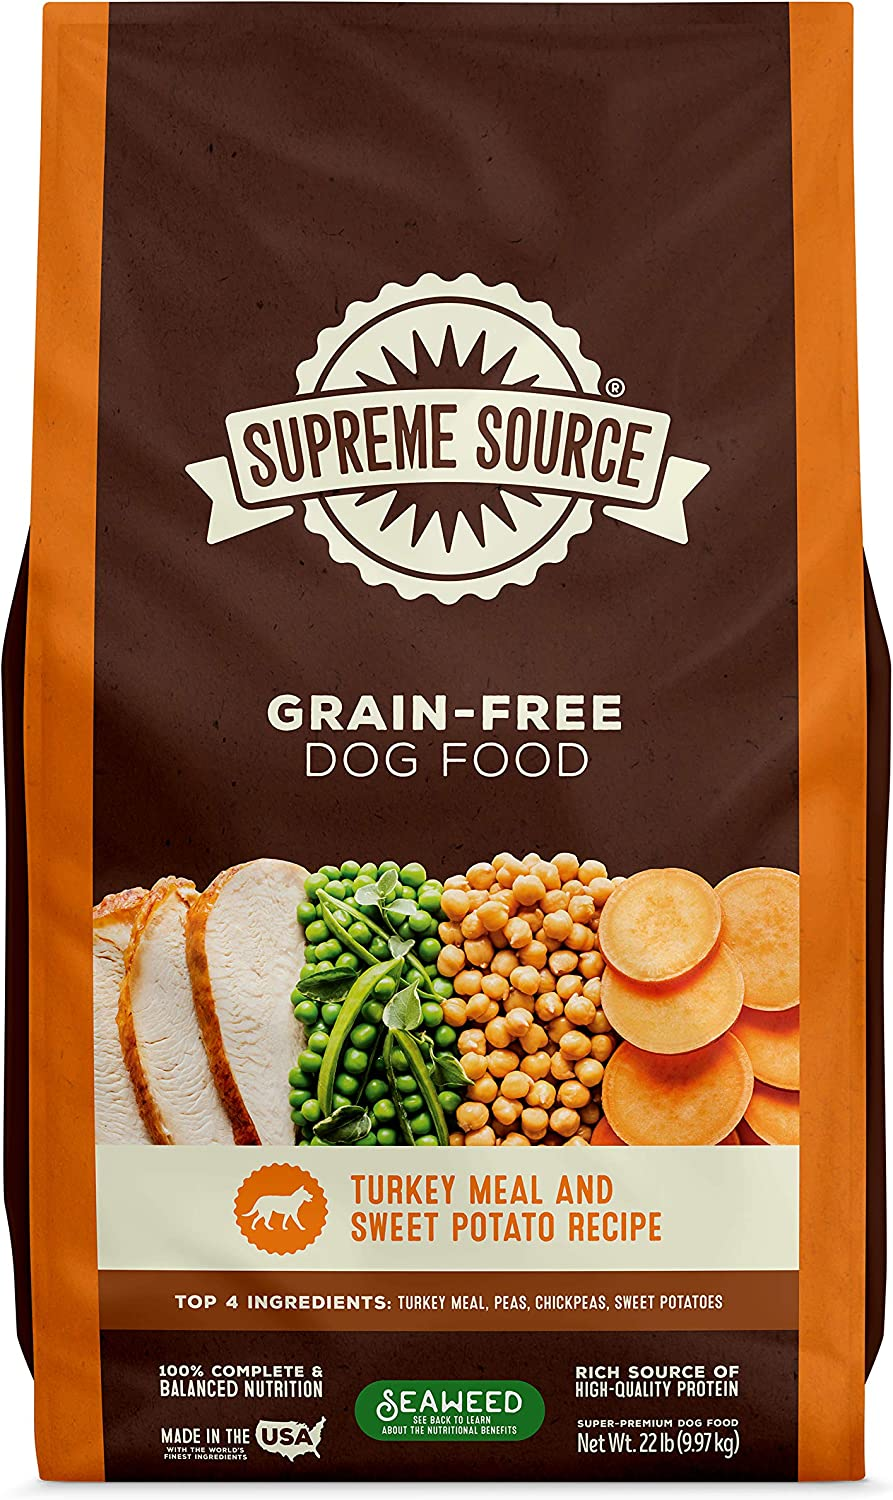 Supreme Source Premium Dry Dog Food Grain Free, USDA Organic Seaweed, Protein, Turkey Meal Sweet Potato Recipe for All Life Stages. Made in The USA.